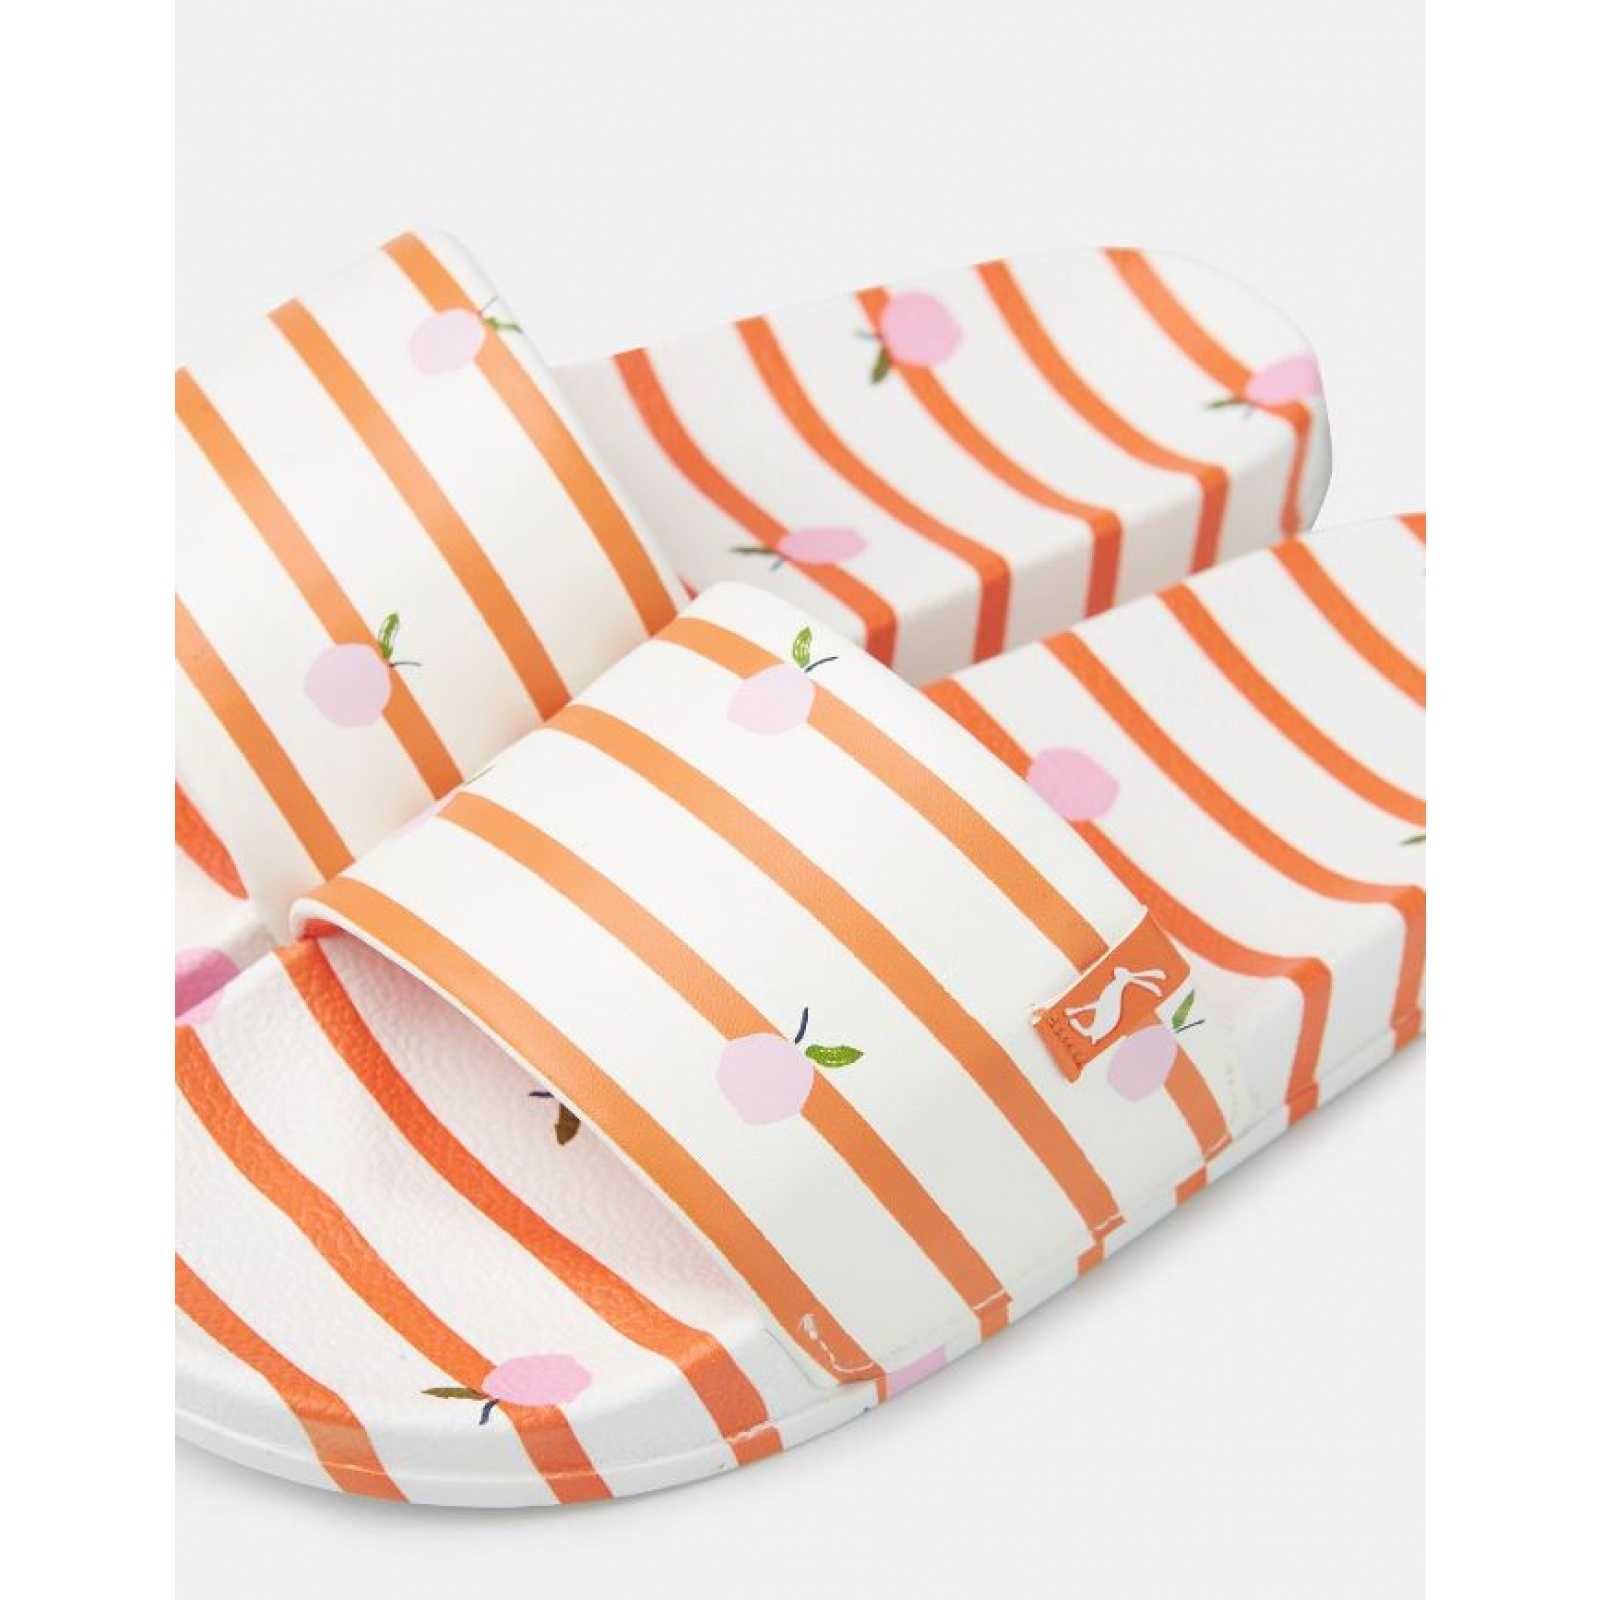 Joules-Poolside-PU-Sliders-Beach-Holiday-Shoes-SS19 miniature 20